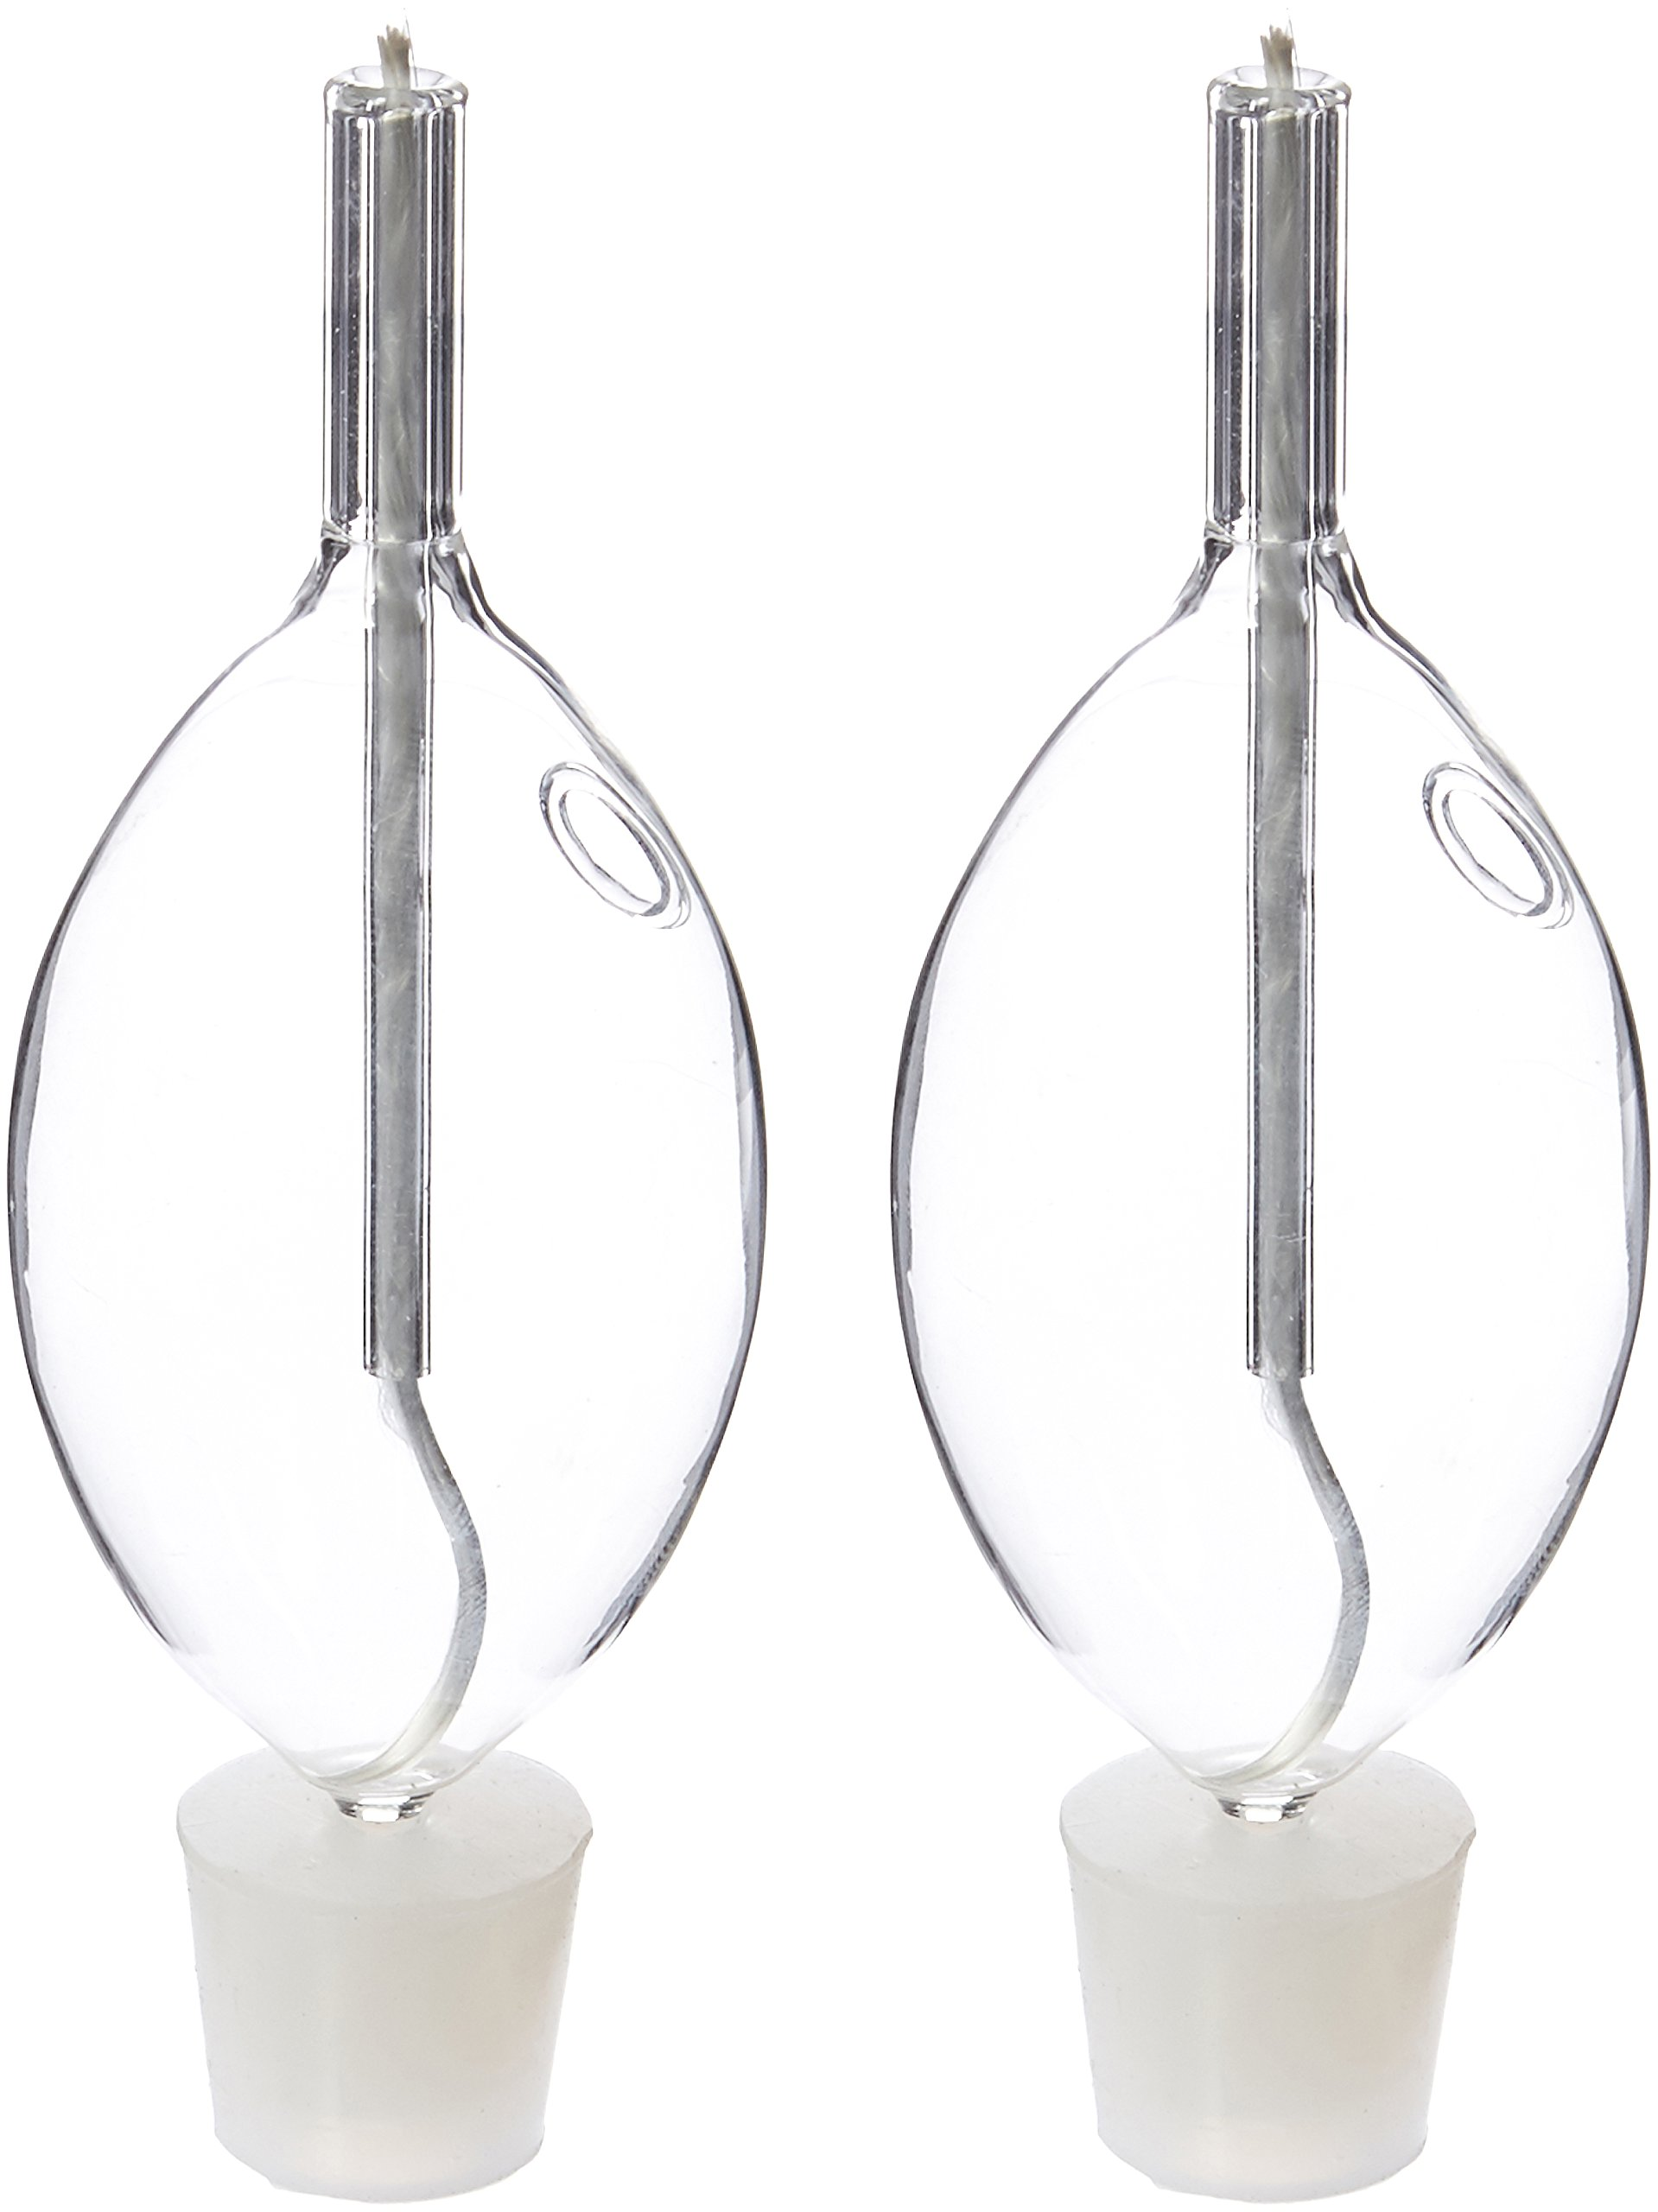 Bright Lights Shabbat Clear Glass Paraffin Oil Lamps - Set of 2 by Bright Lights